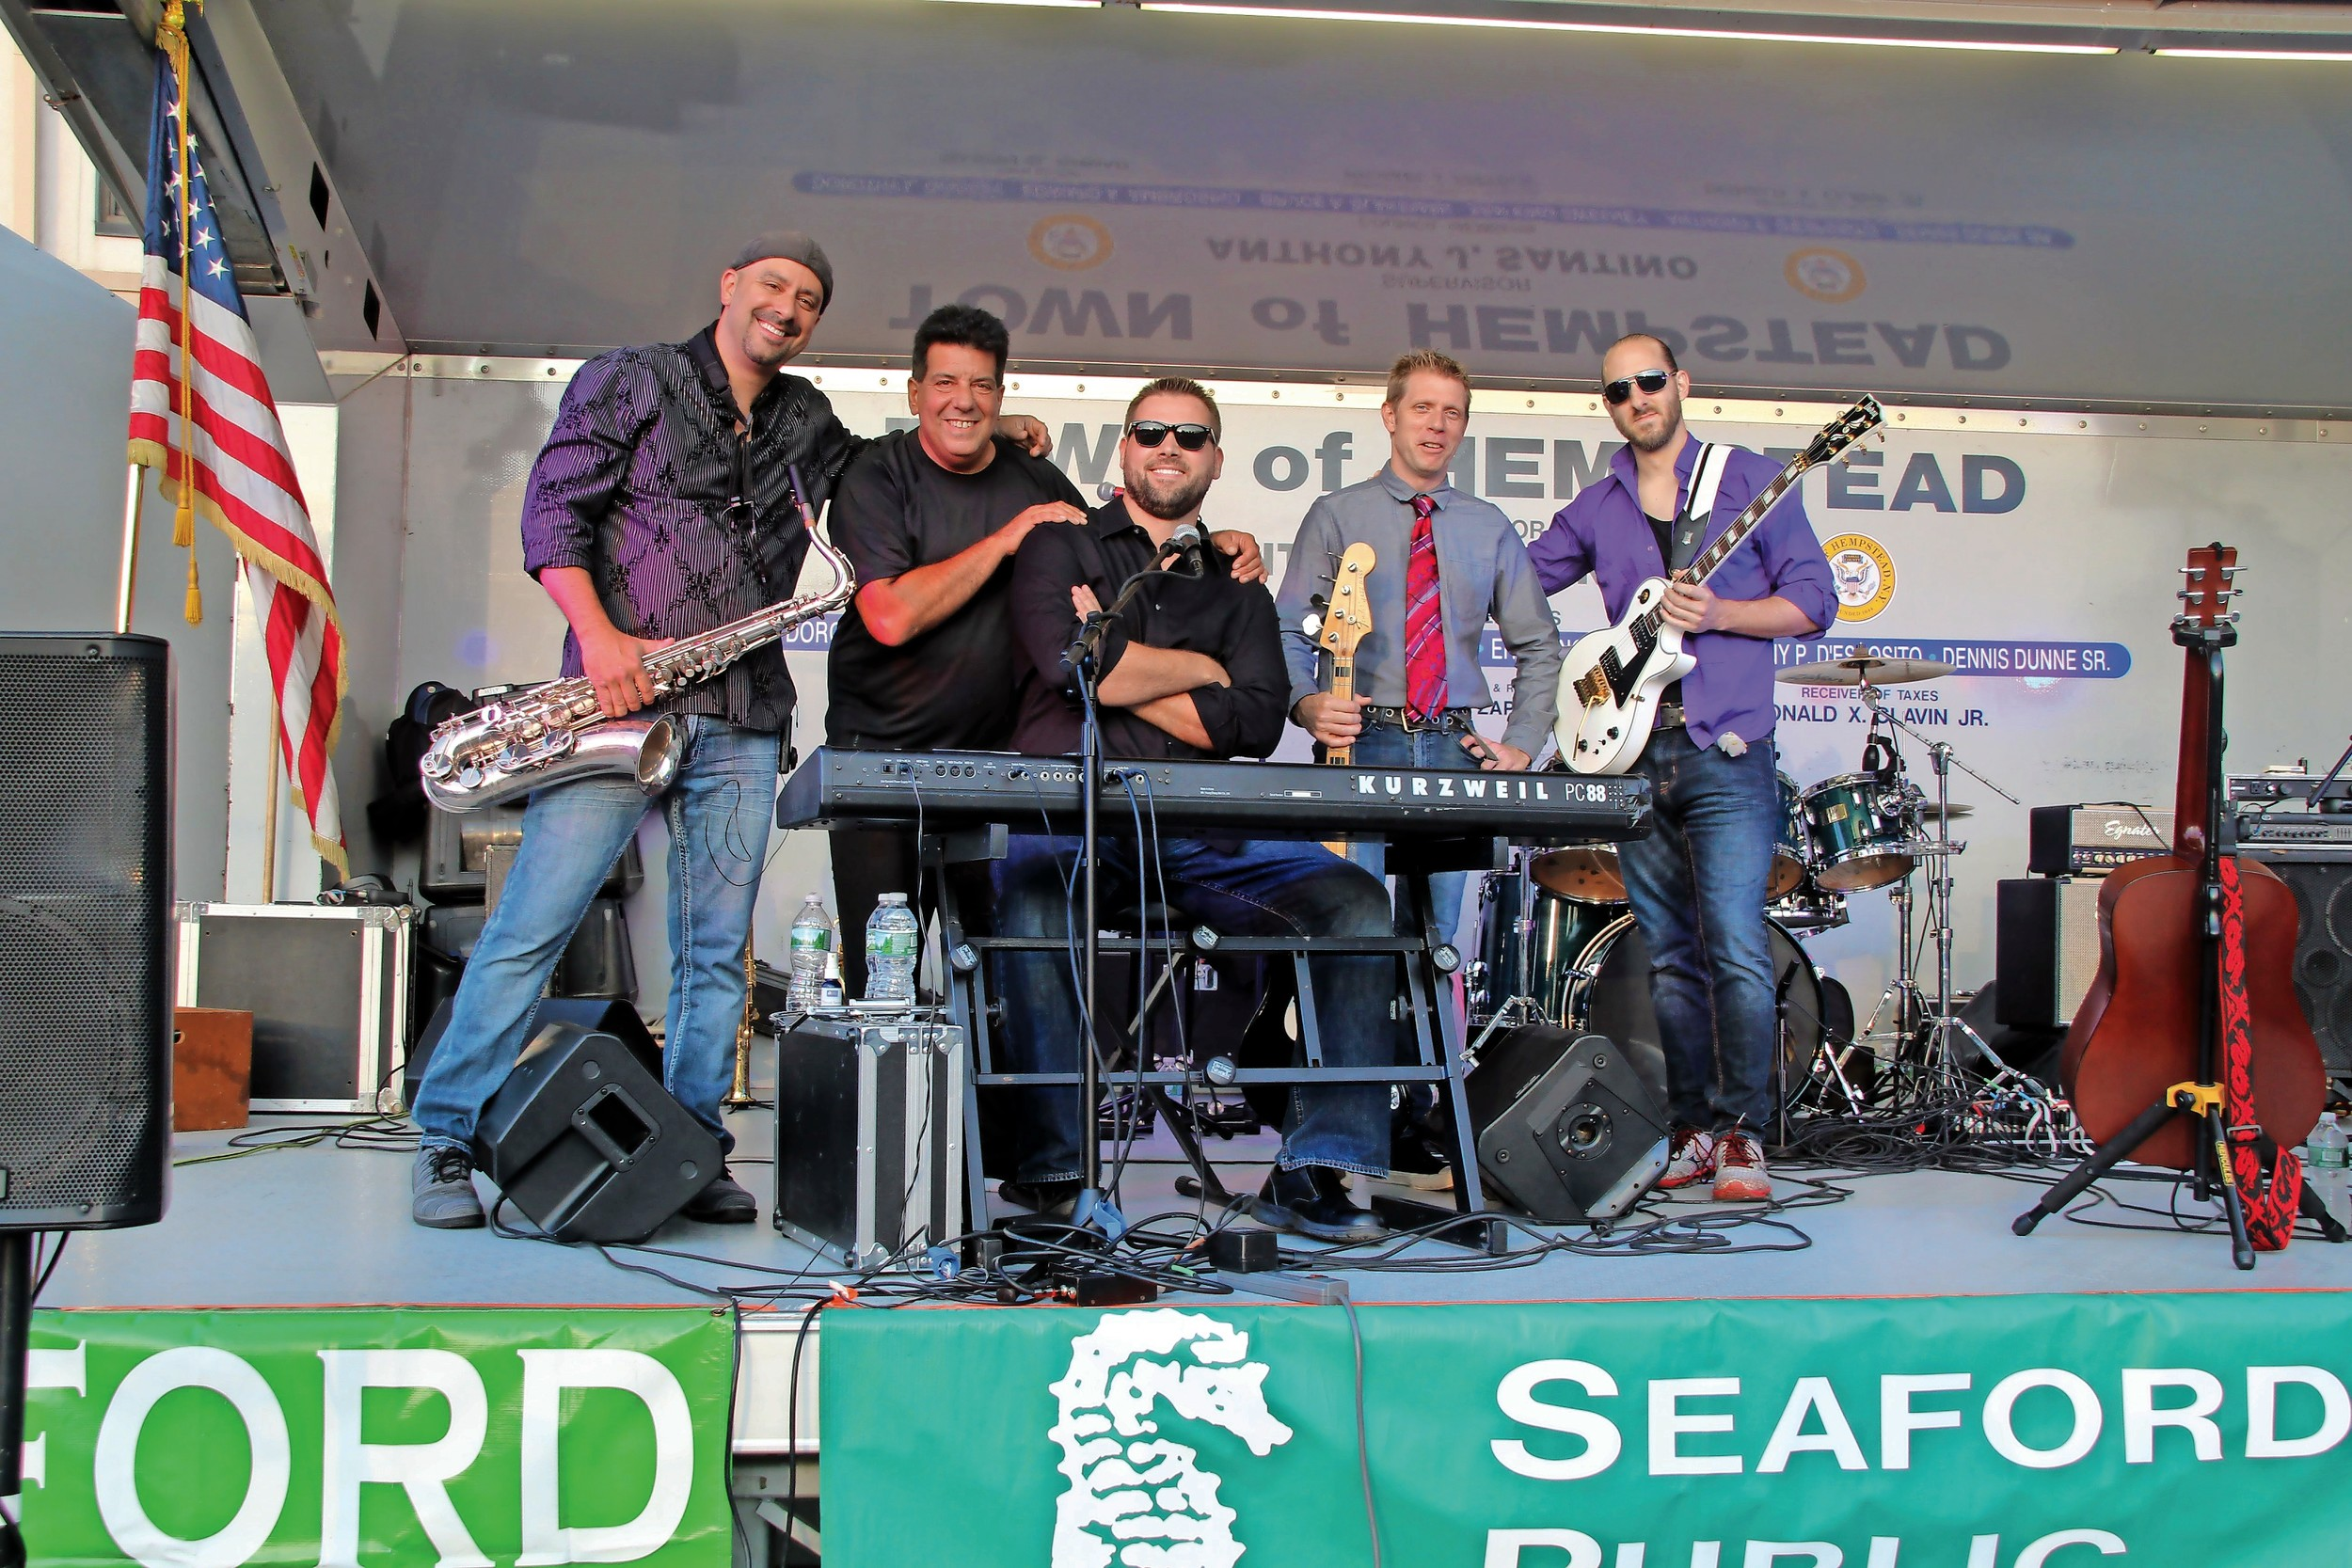 Captain Jack, a beloved local cover band, played Billy Joel and classic rock tunes in Seaford on July 29. From left, Adam Seely, Sal DiMarco, Christian Macchio, Will Shelley and Sal Locascio performed at the concert, which was sponsored by the Seaford Public Library and the Chamber of Commerce.